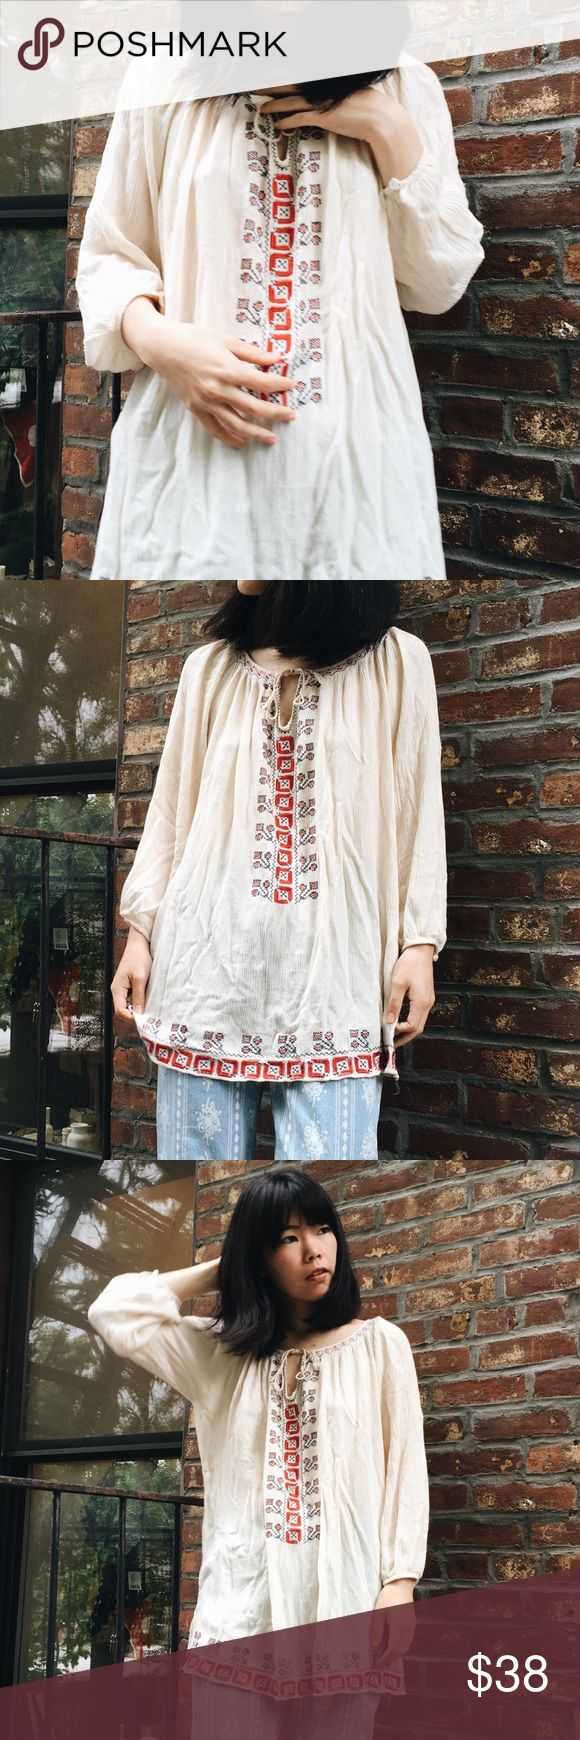 """Vintage bohemian embroidered flea cream Vintage bohemian embroidered flea cream white tunic / top  So cute embroidery in front and on the bottom!!💕 perfect for summer 💕 • fits like small to medium (model is 5'3"""" and small size) • in great condition!  #vintage #floral #maxidress #zara #topshop #asos #uo #andotgerstories #antholopologie #gap #levis #freepeople #chic #elegant #boho #unique Tops Tunics"""